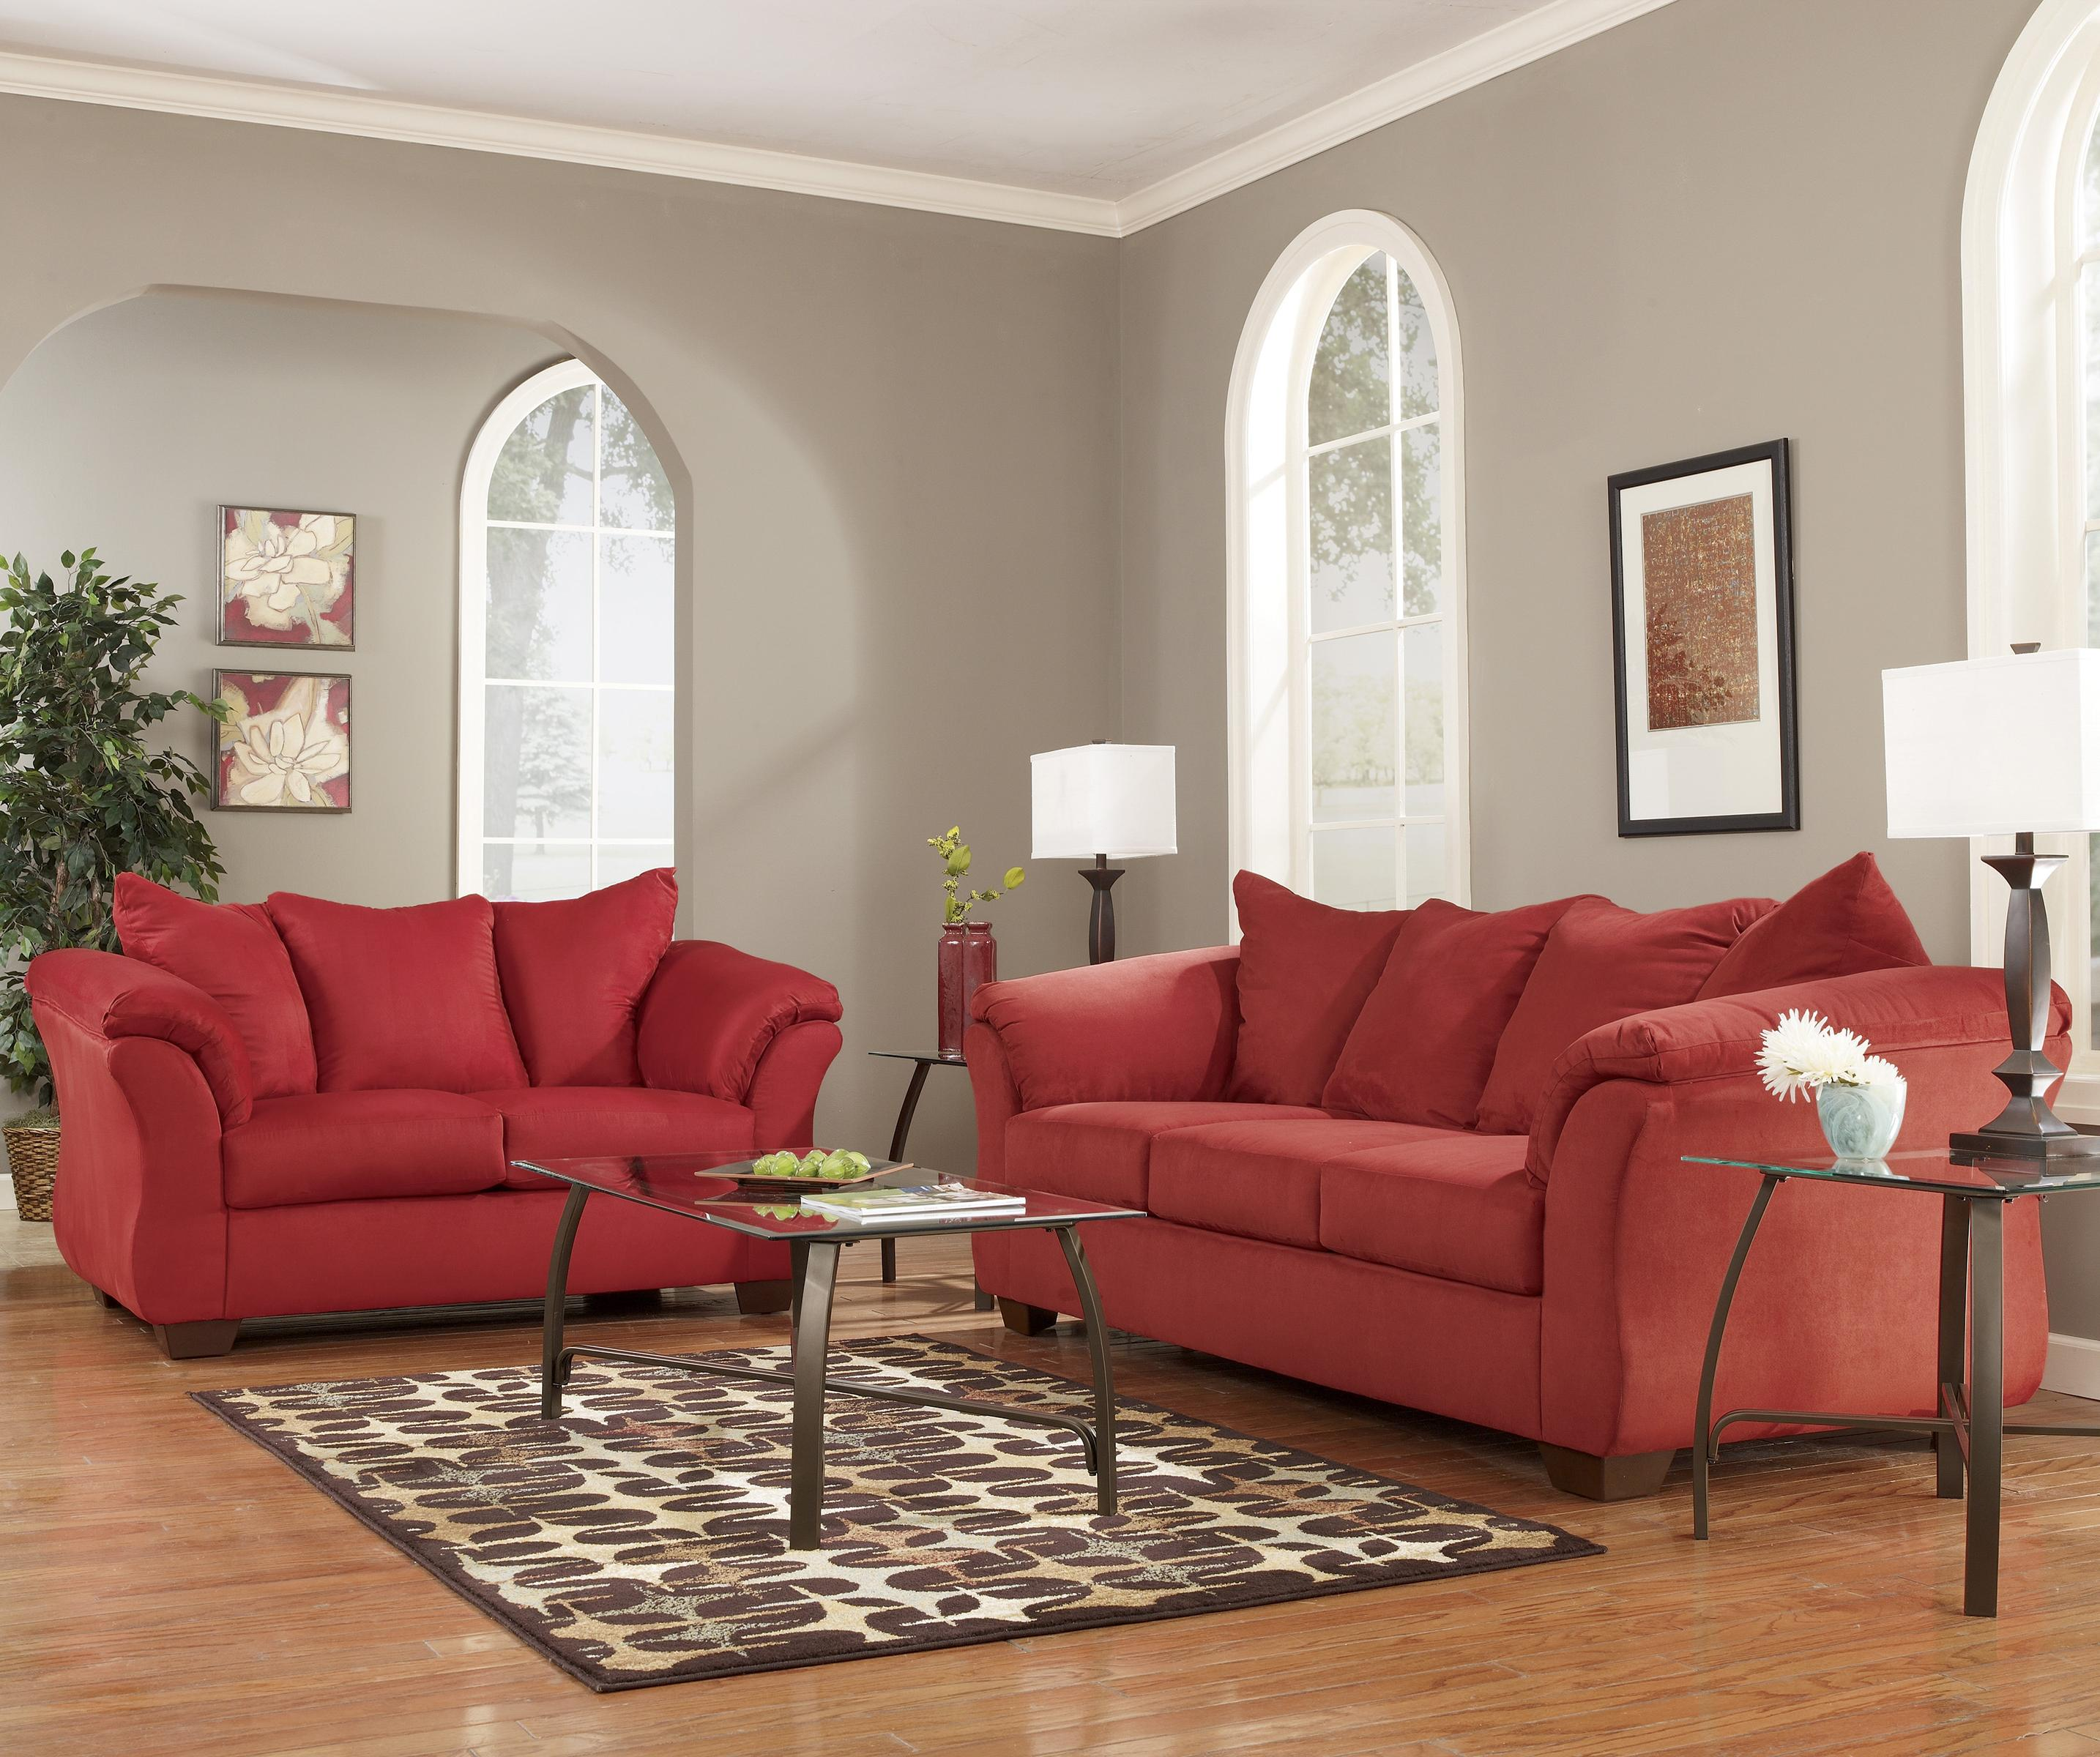 Signature Design By Ashley Darcy Salsa 7500138 Contemporary Stationary Sofa With Flared Back